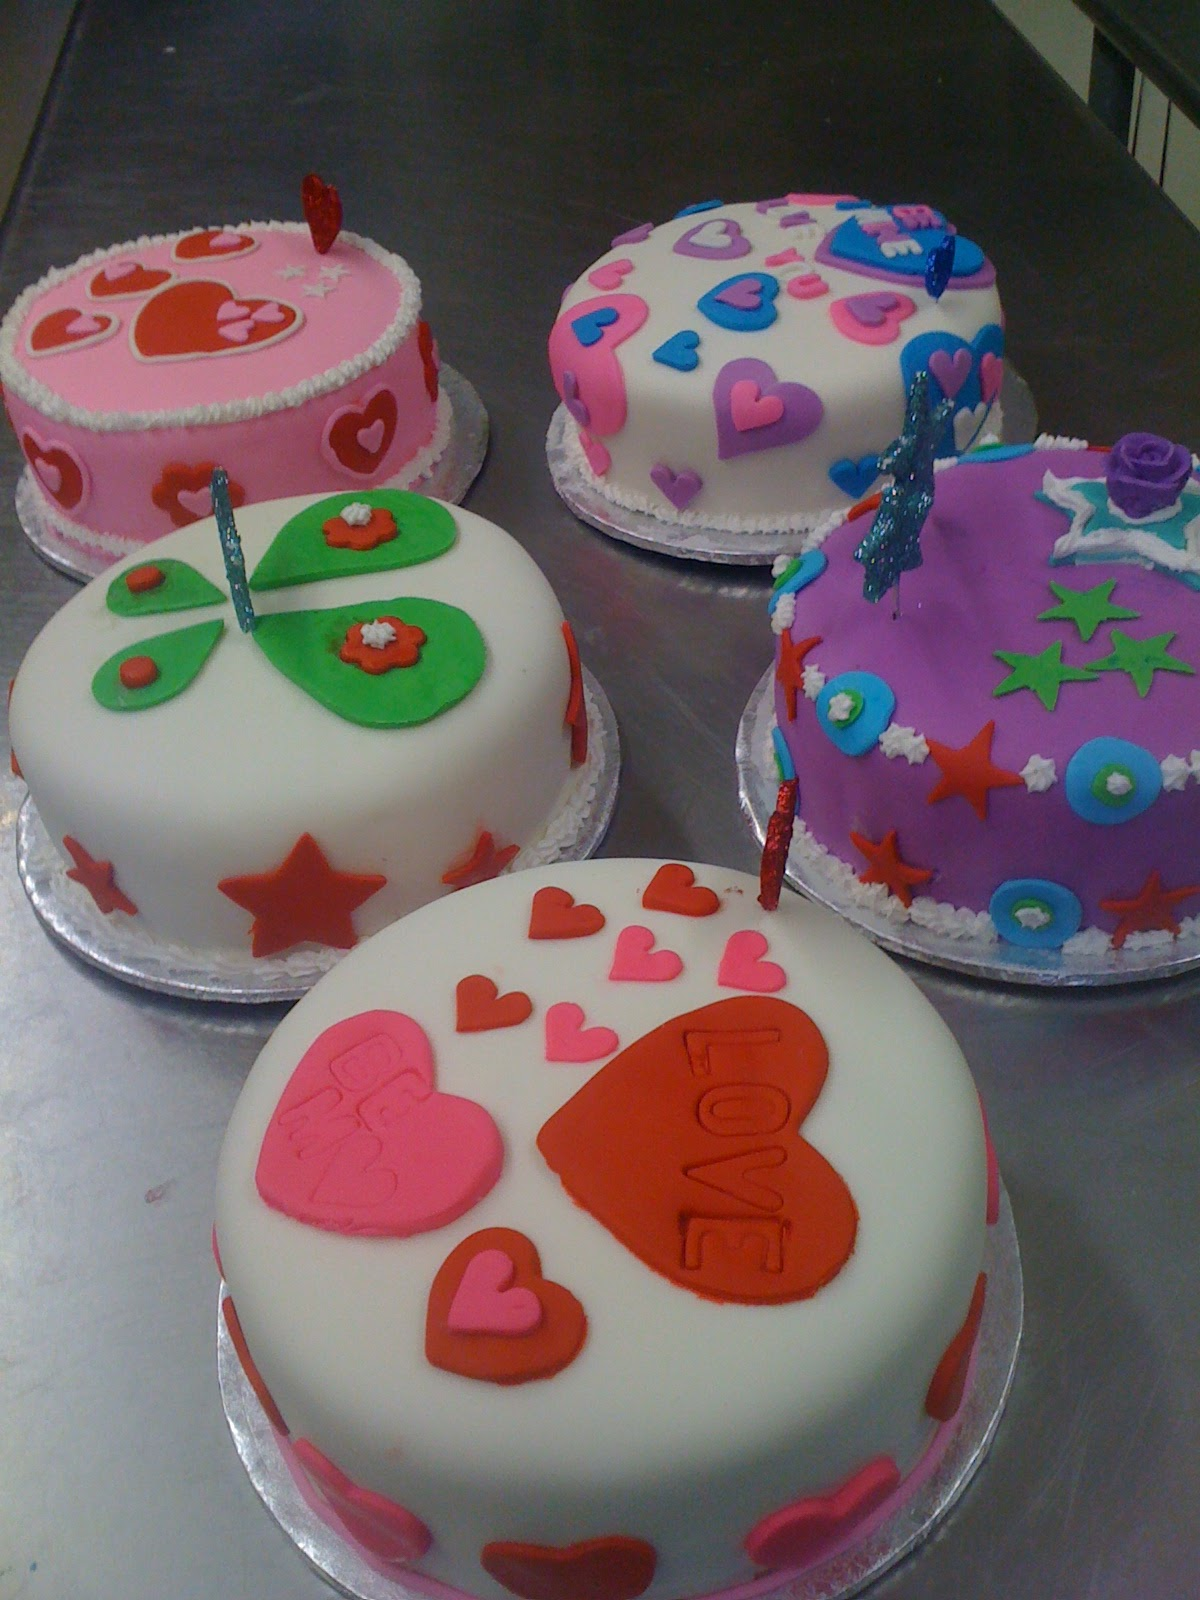 Leap of Cake : Cake Decorating Workshops and Classes